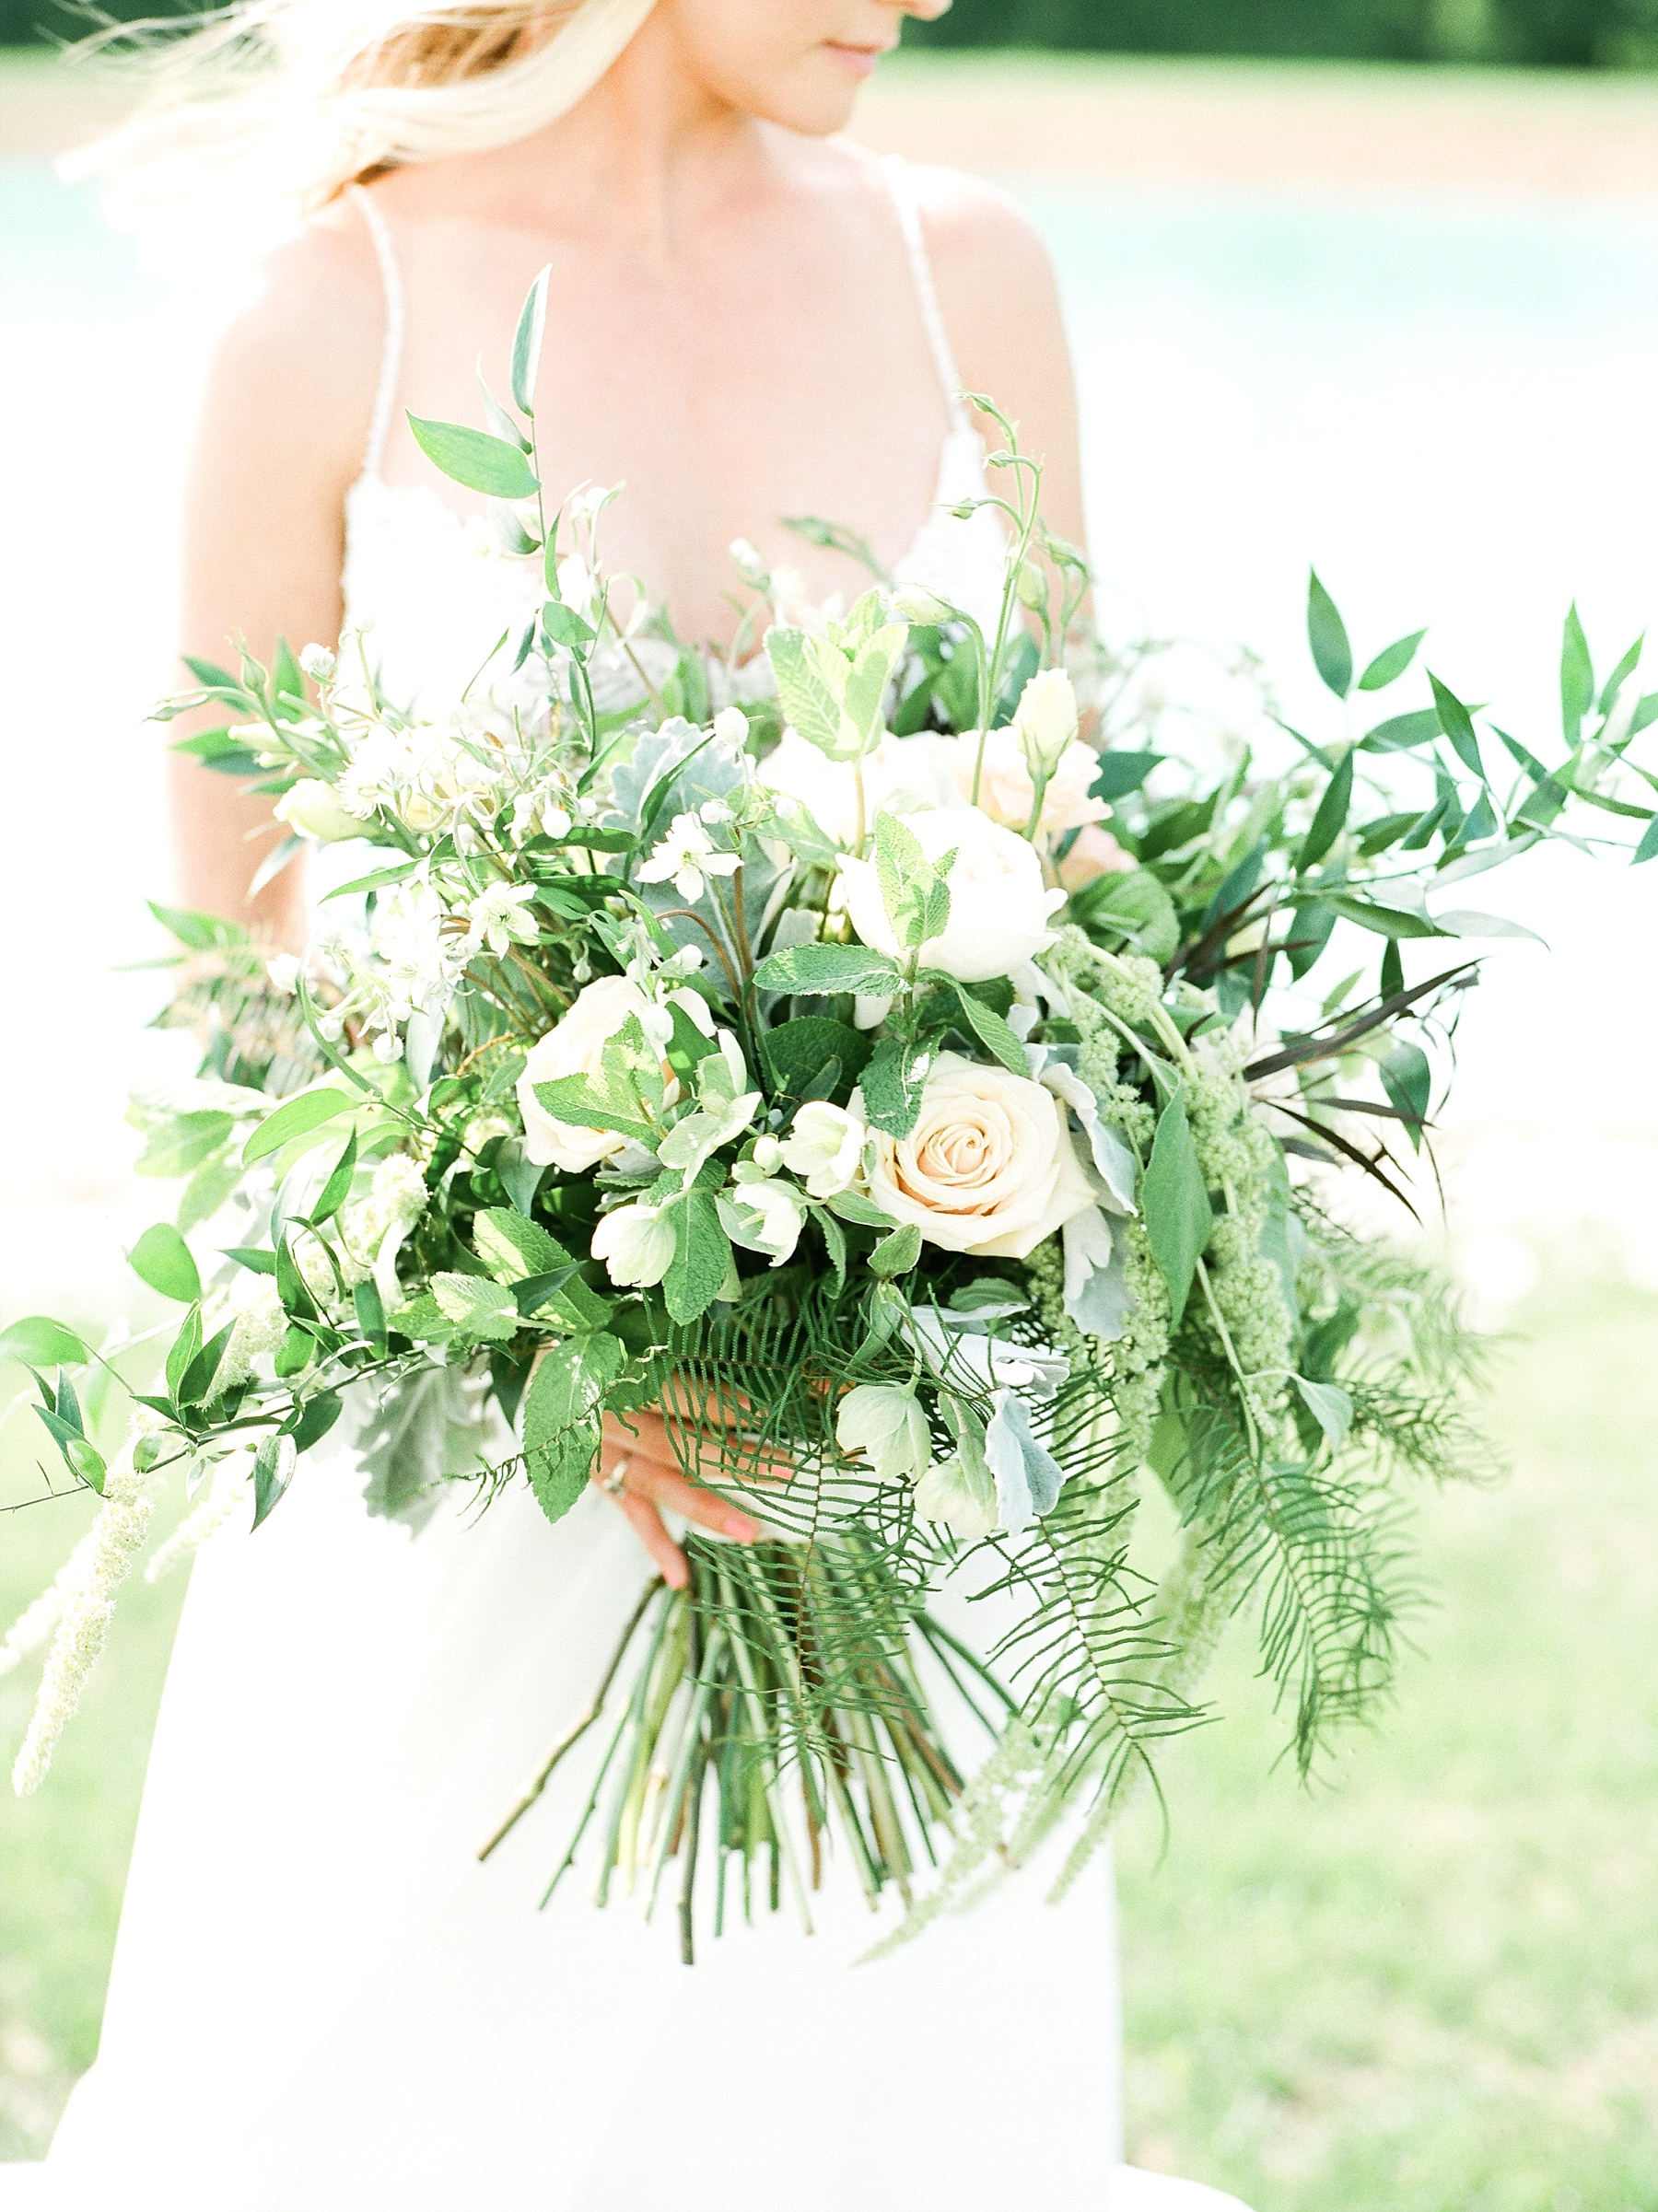 Textural Organic Wedding in All White Venue by Kelsi Kliethermes Wedding Photographer - Missouri, Midwest, and Destinations_0048.jpg